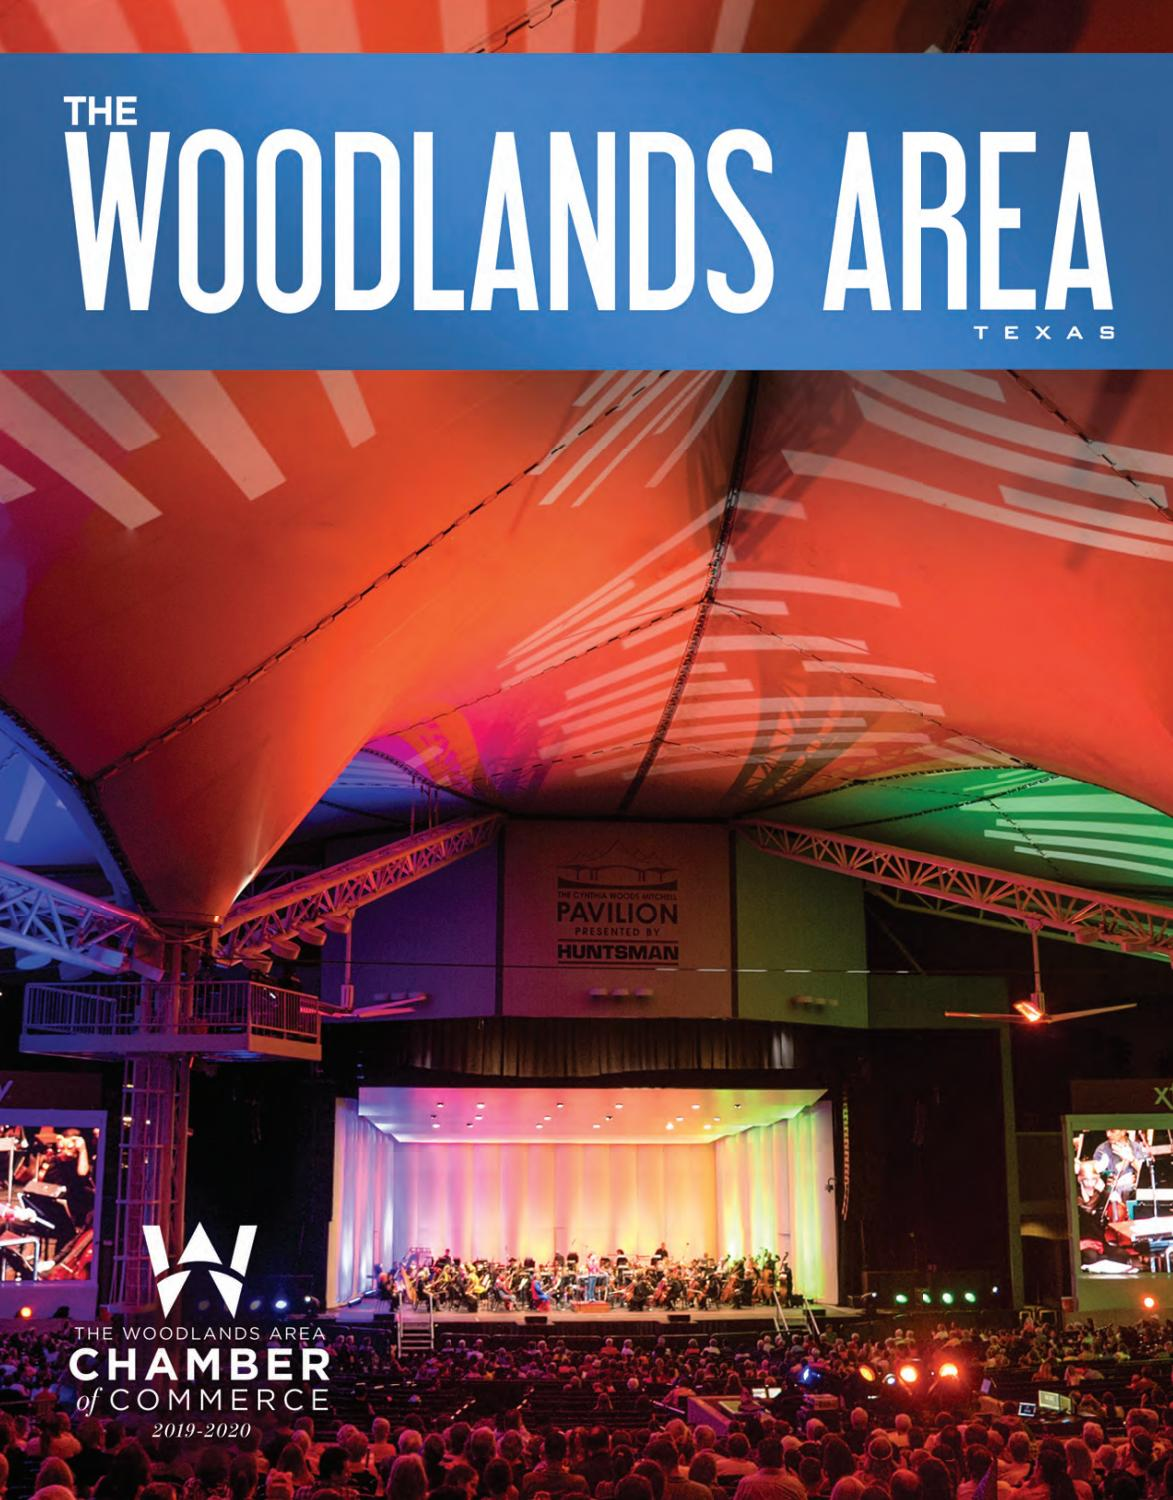 The Woodlands TX Community Profile by Town Square